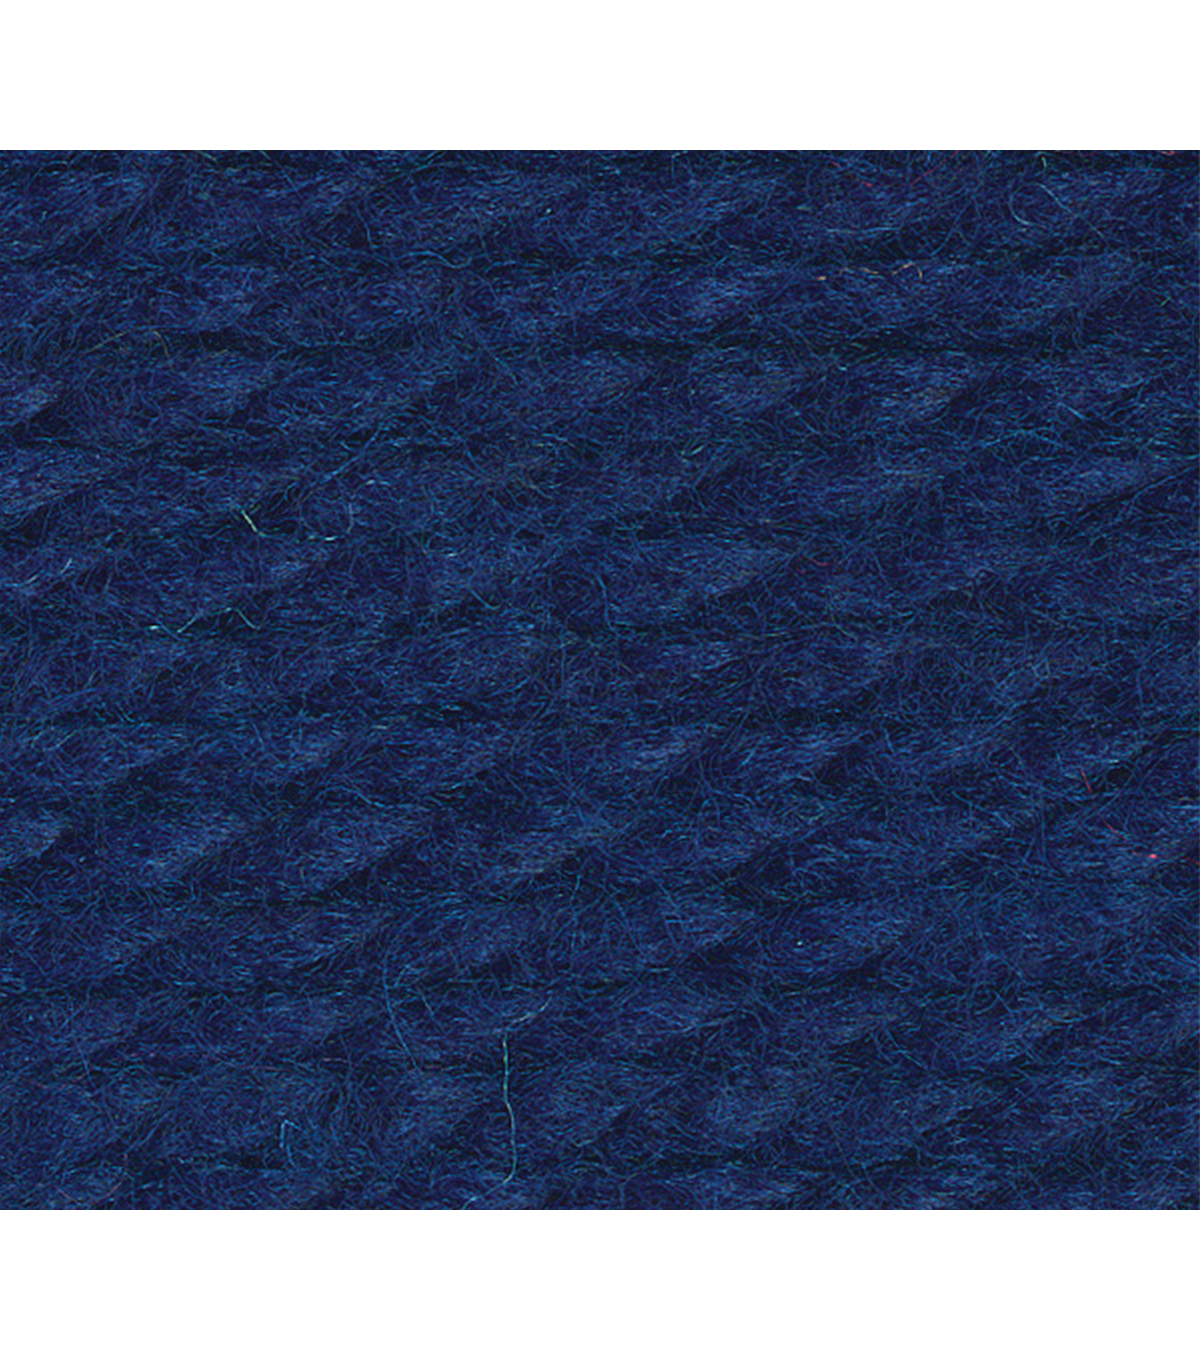 Lion Brand Wool-Ease Thick And Quick Yarn, Navy